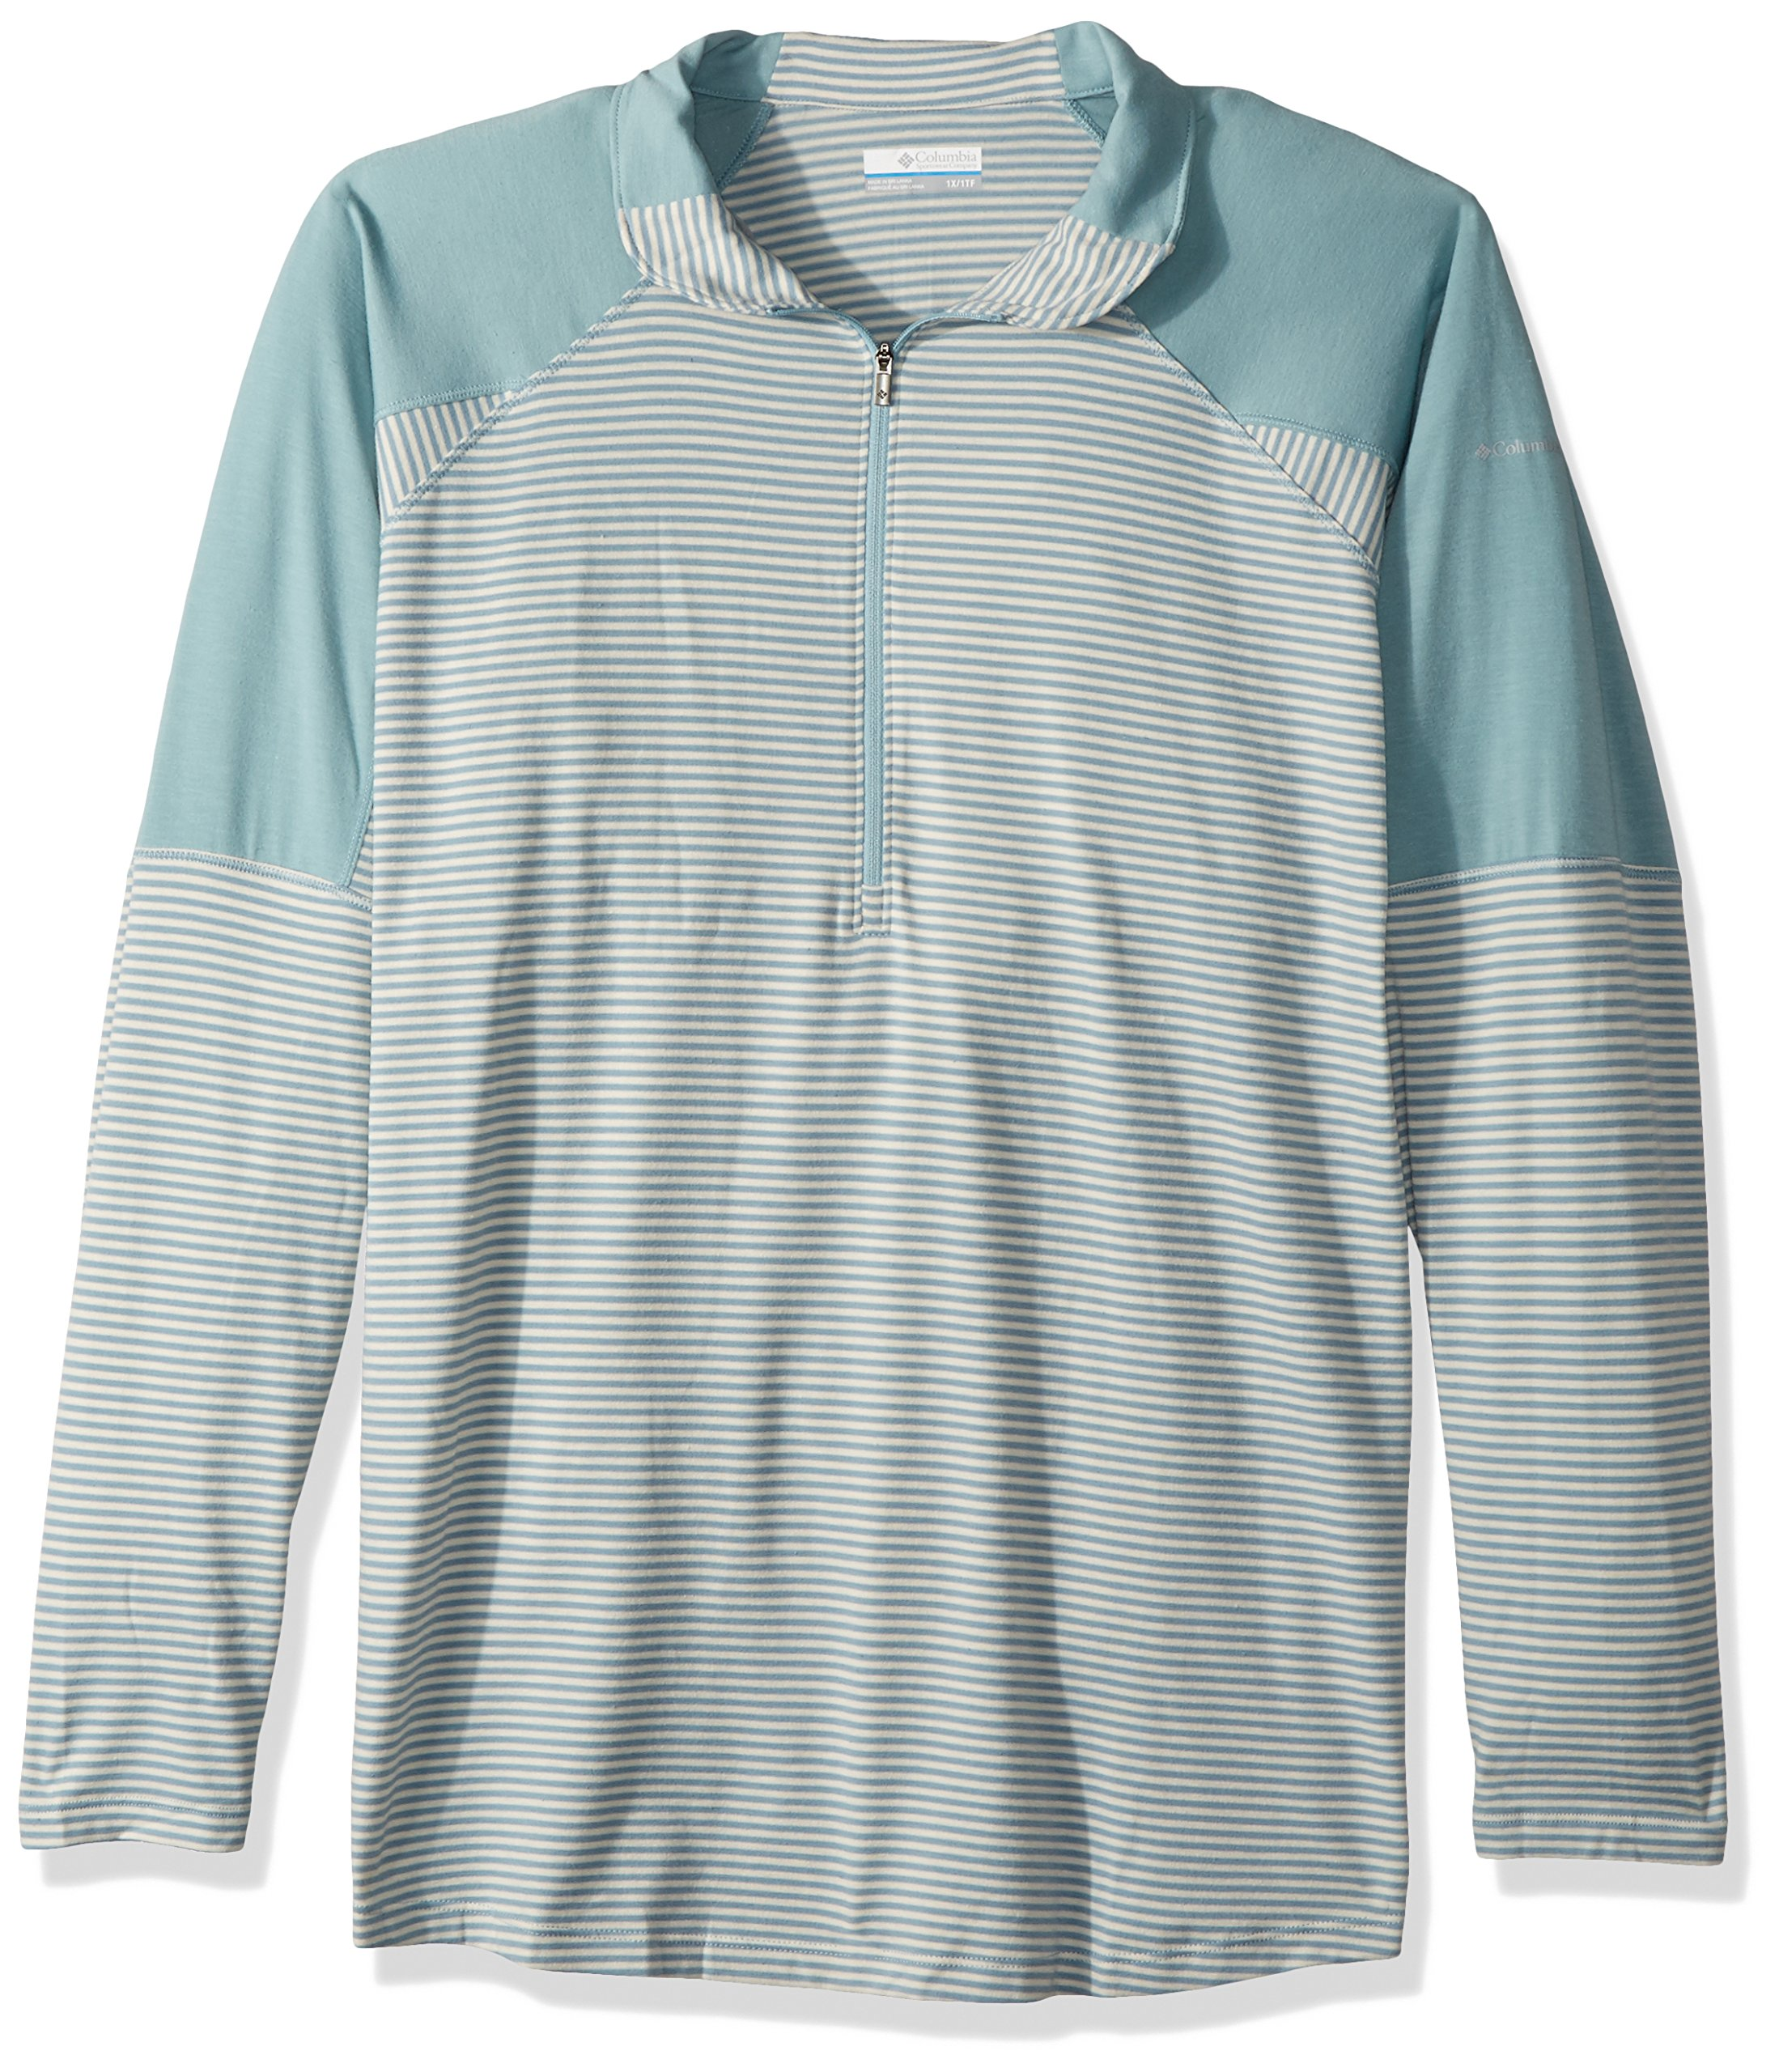 Columbia Layer Upward 1/2 Zip, Stone Blue, X-Small by Columbia